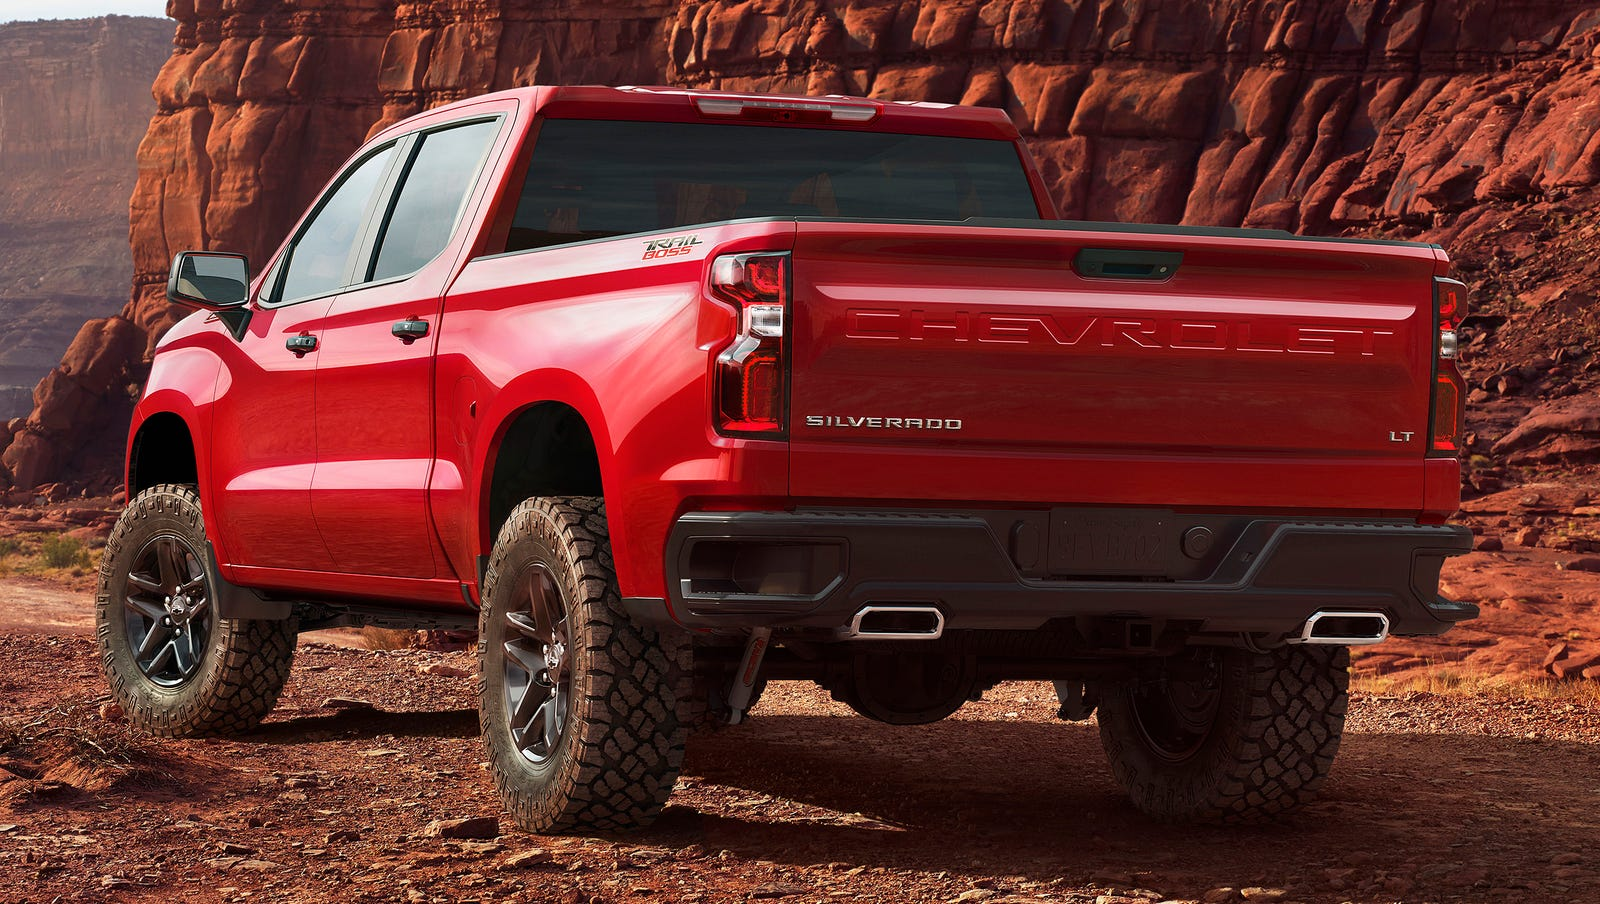 Chevrolet Silverado Gets New Look For 2019 And Lots Of Steel